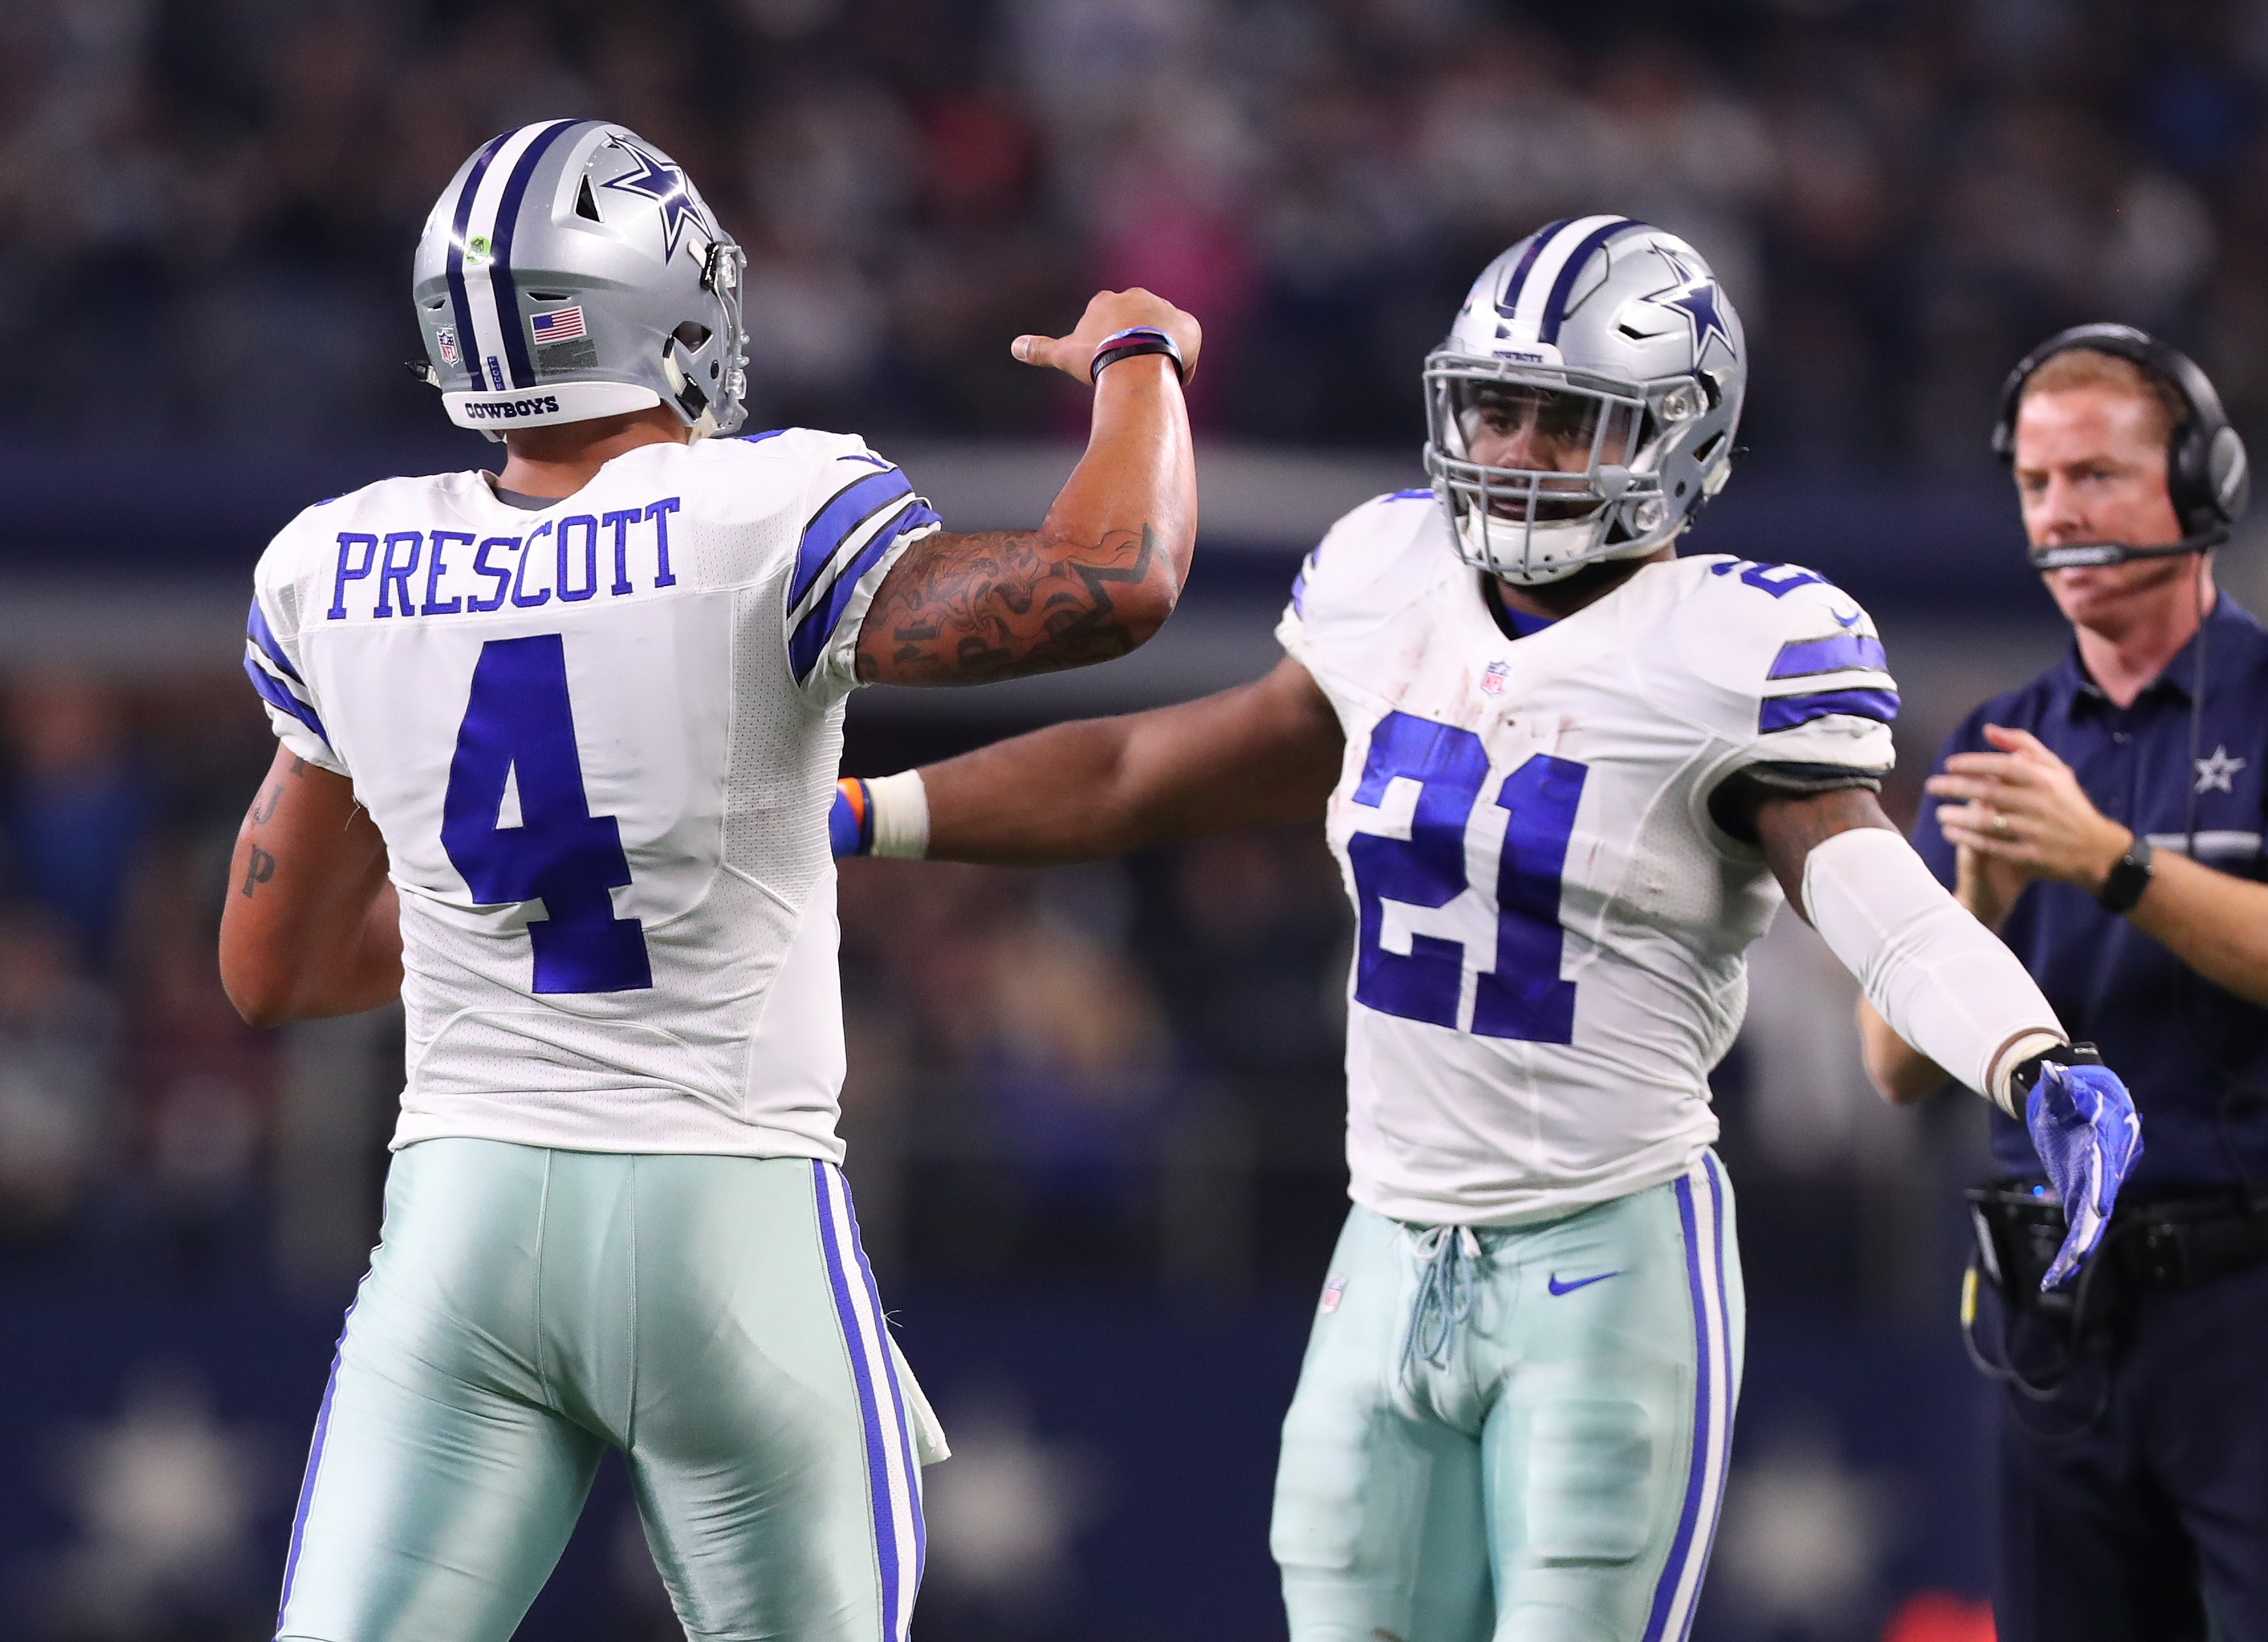 ARLINGTON, TX - DECEMBER 18: Dak Prescott #4 and Ezekiel Elliott of the Dallas Cowboys celebrate after scoring a touchdown during the second quarter against the Tampa Bay Buccaneers at AT&T Stadium on December 18, 2016 in Arlington, Texas.